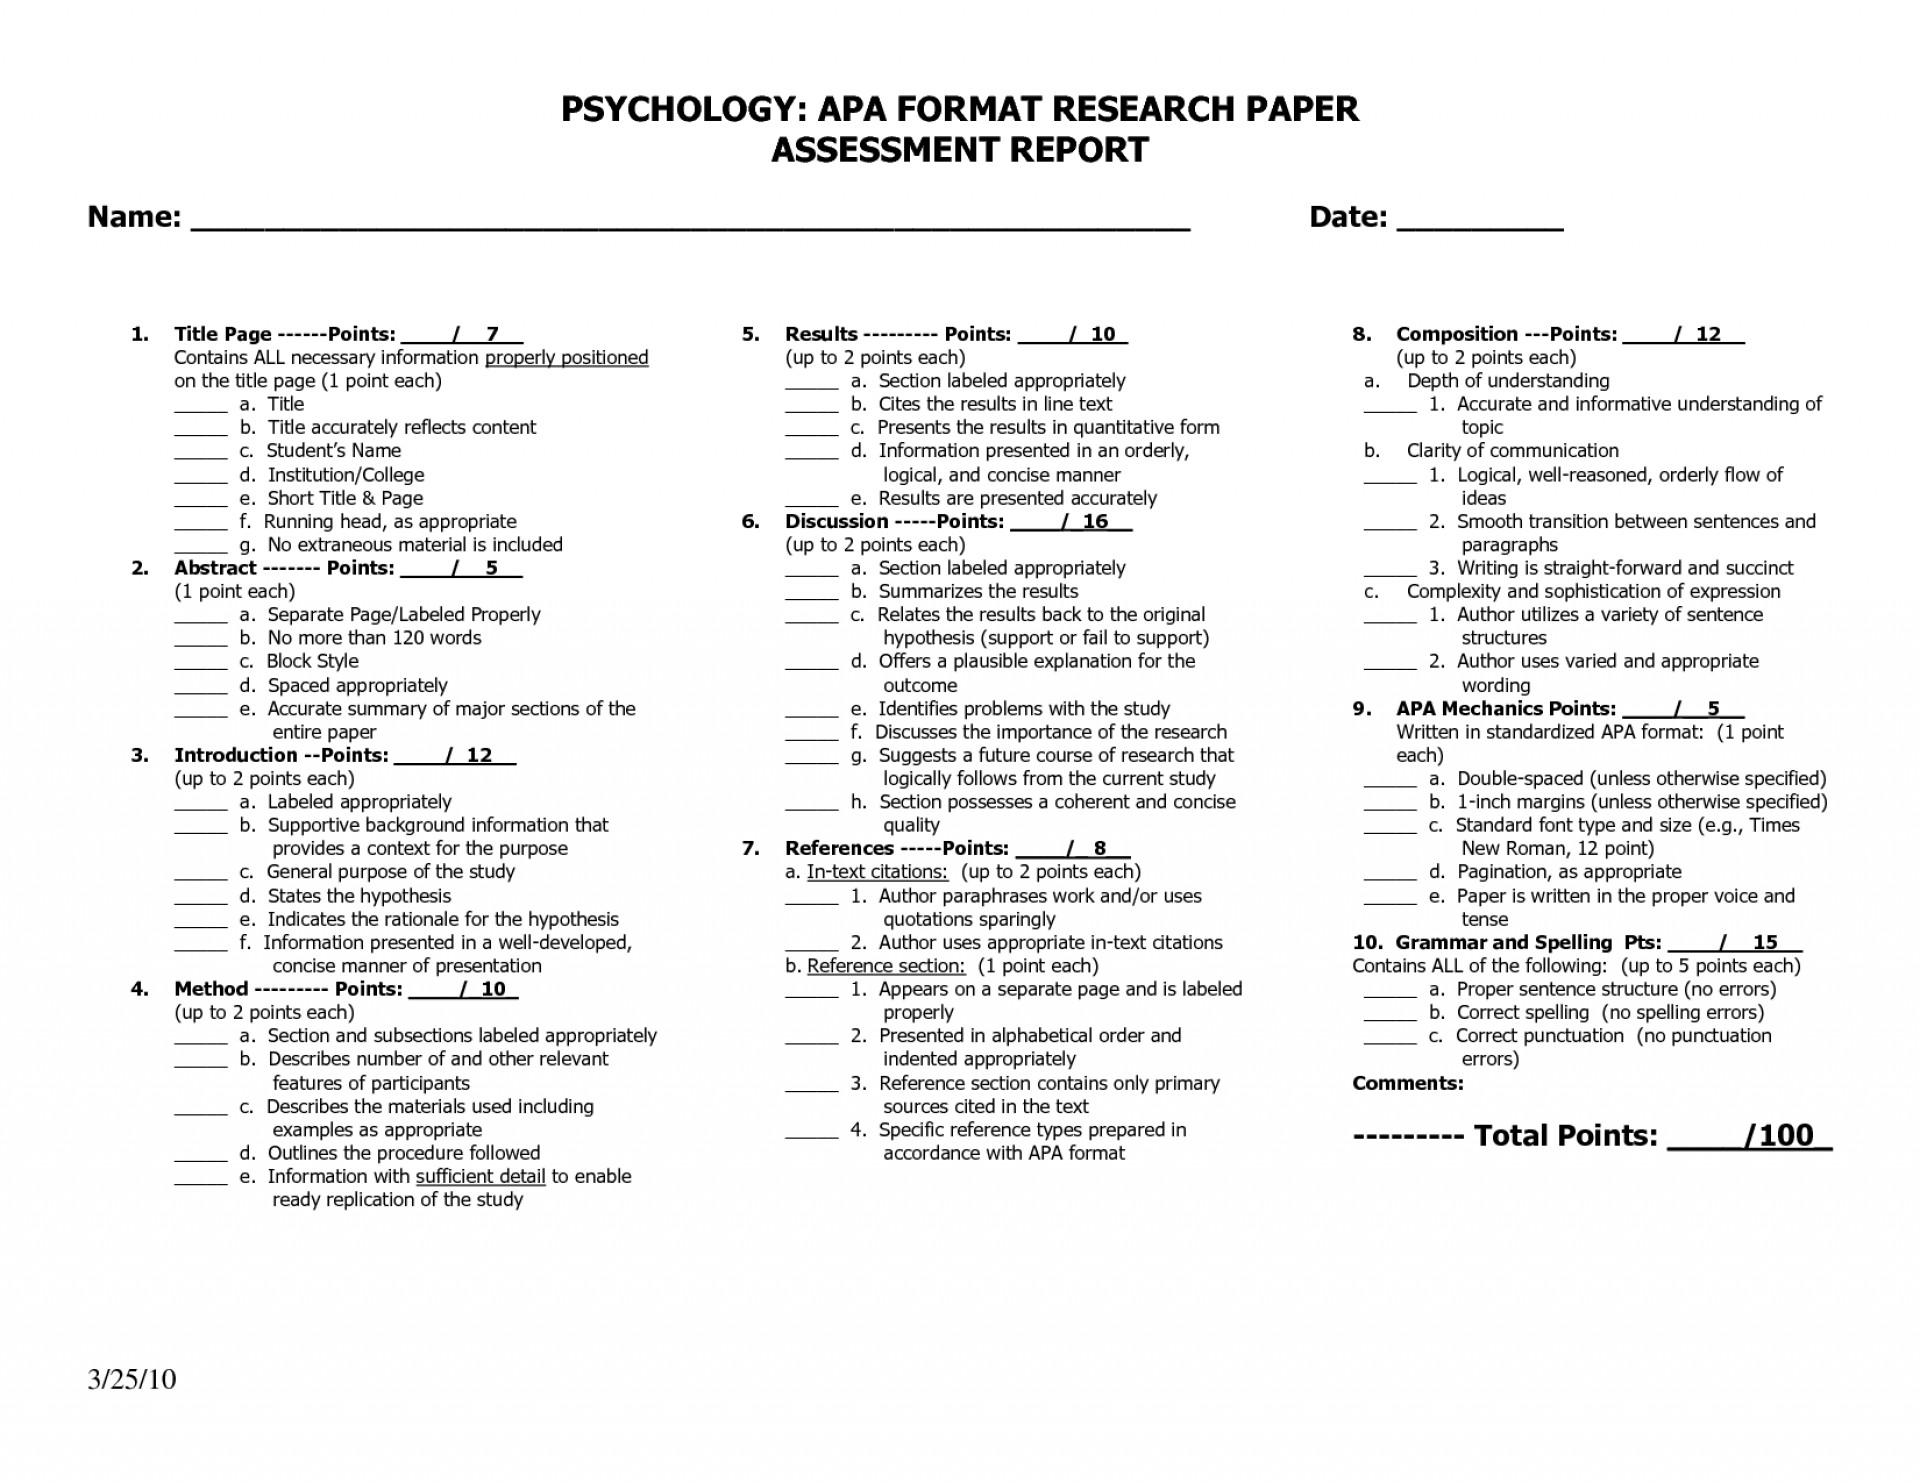 021 Research Paper Apa Format For Psychology Striking Topics High School Students Reddit 1920